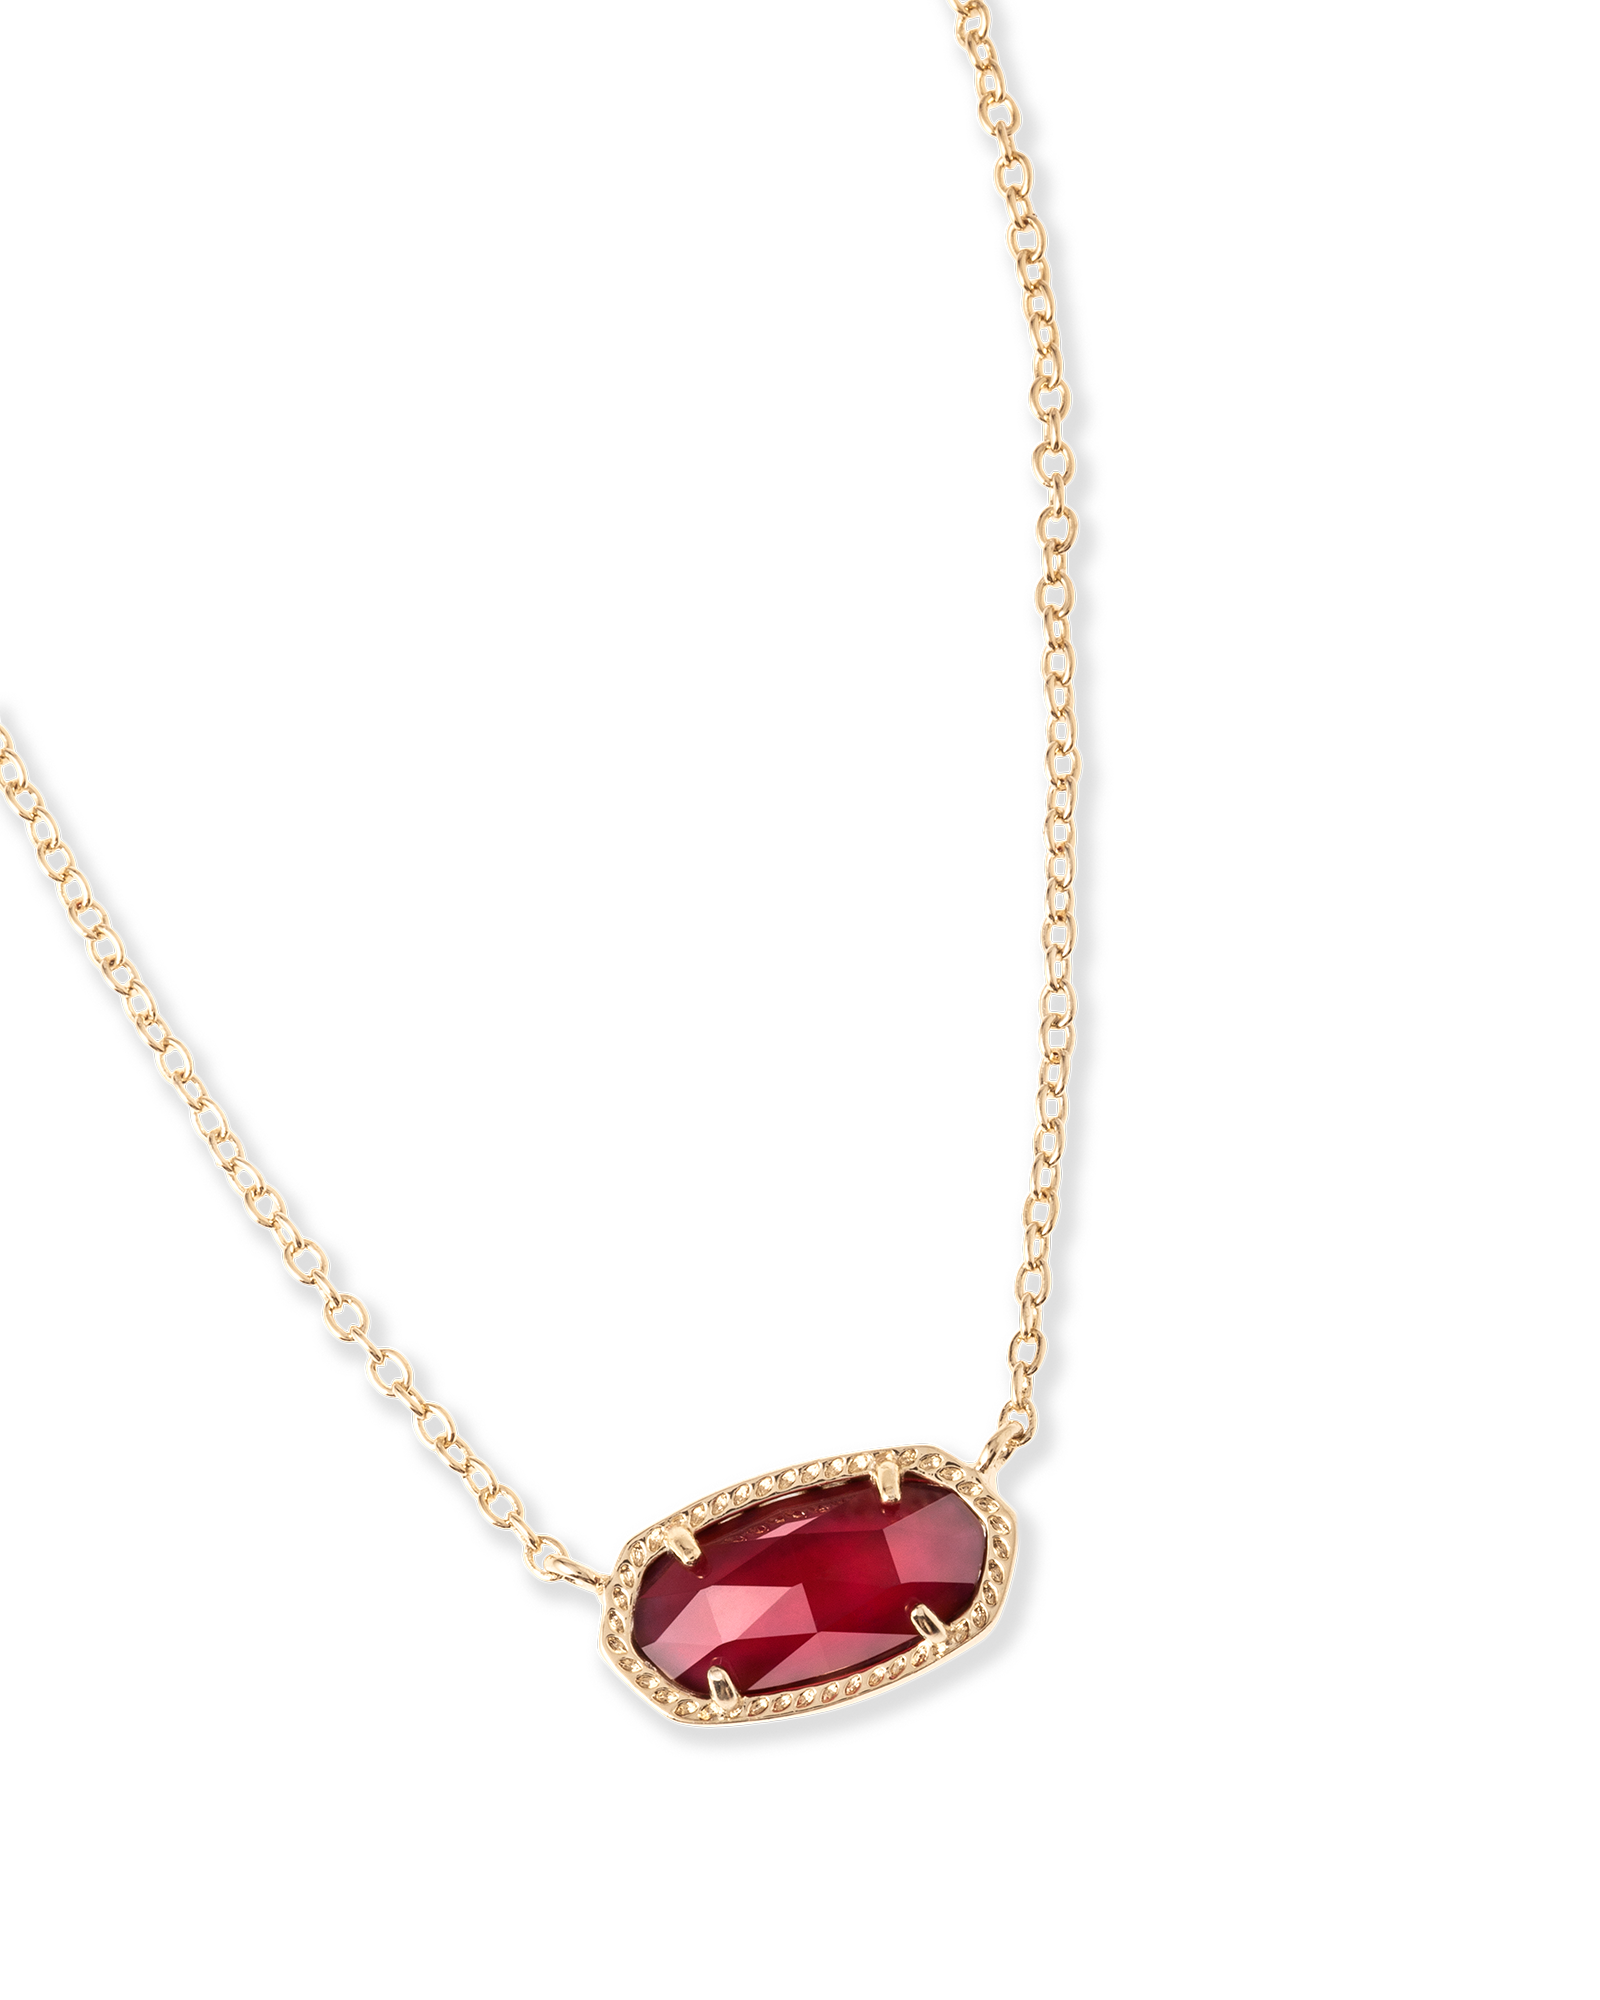 Shop unique classic gold pendant necklaces from Kendra Scott The